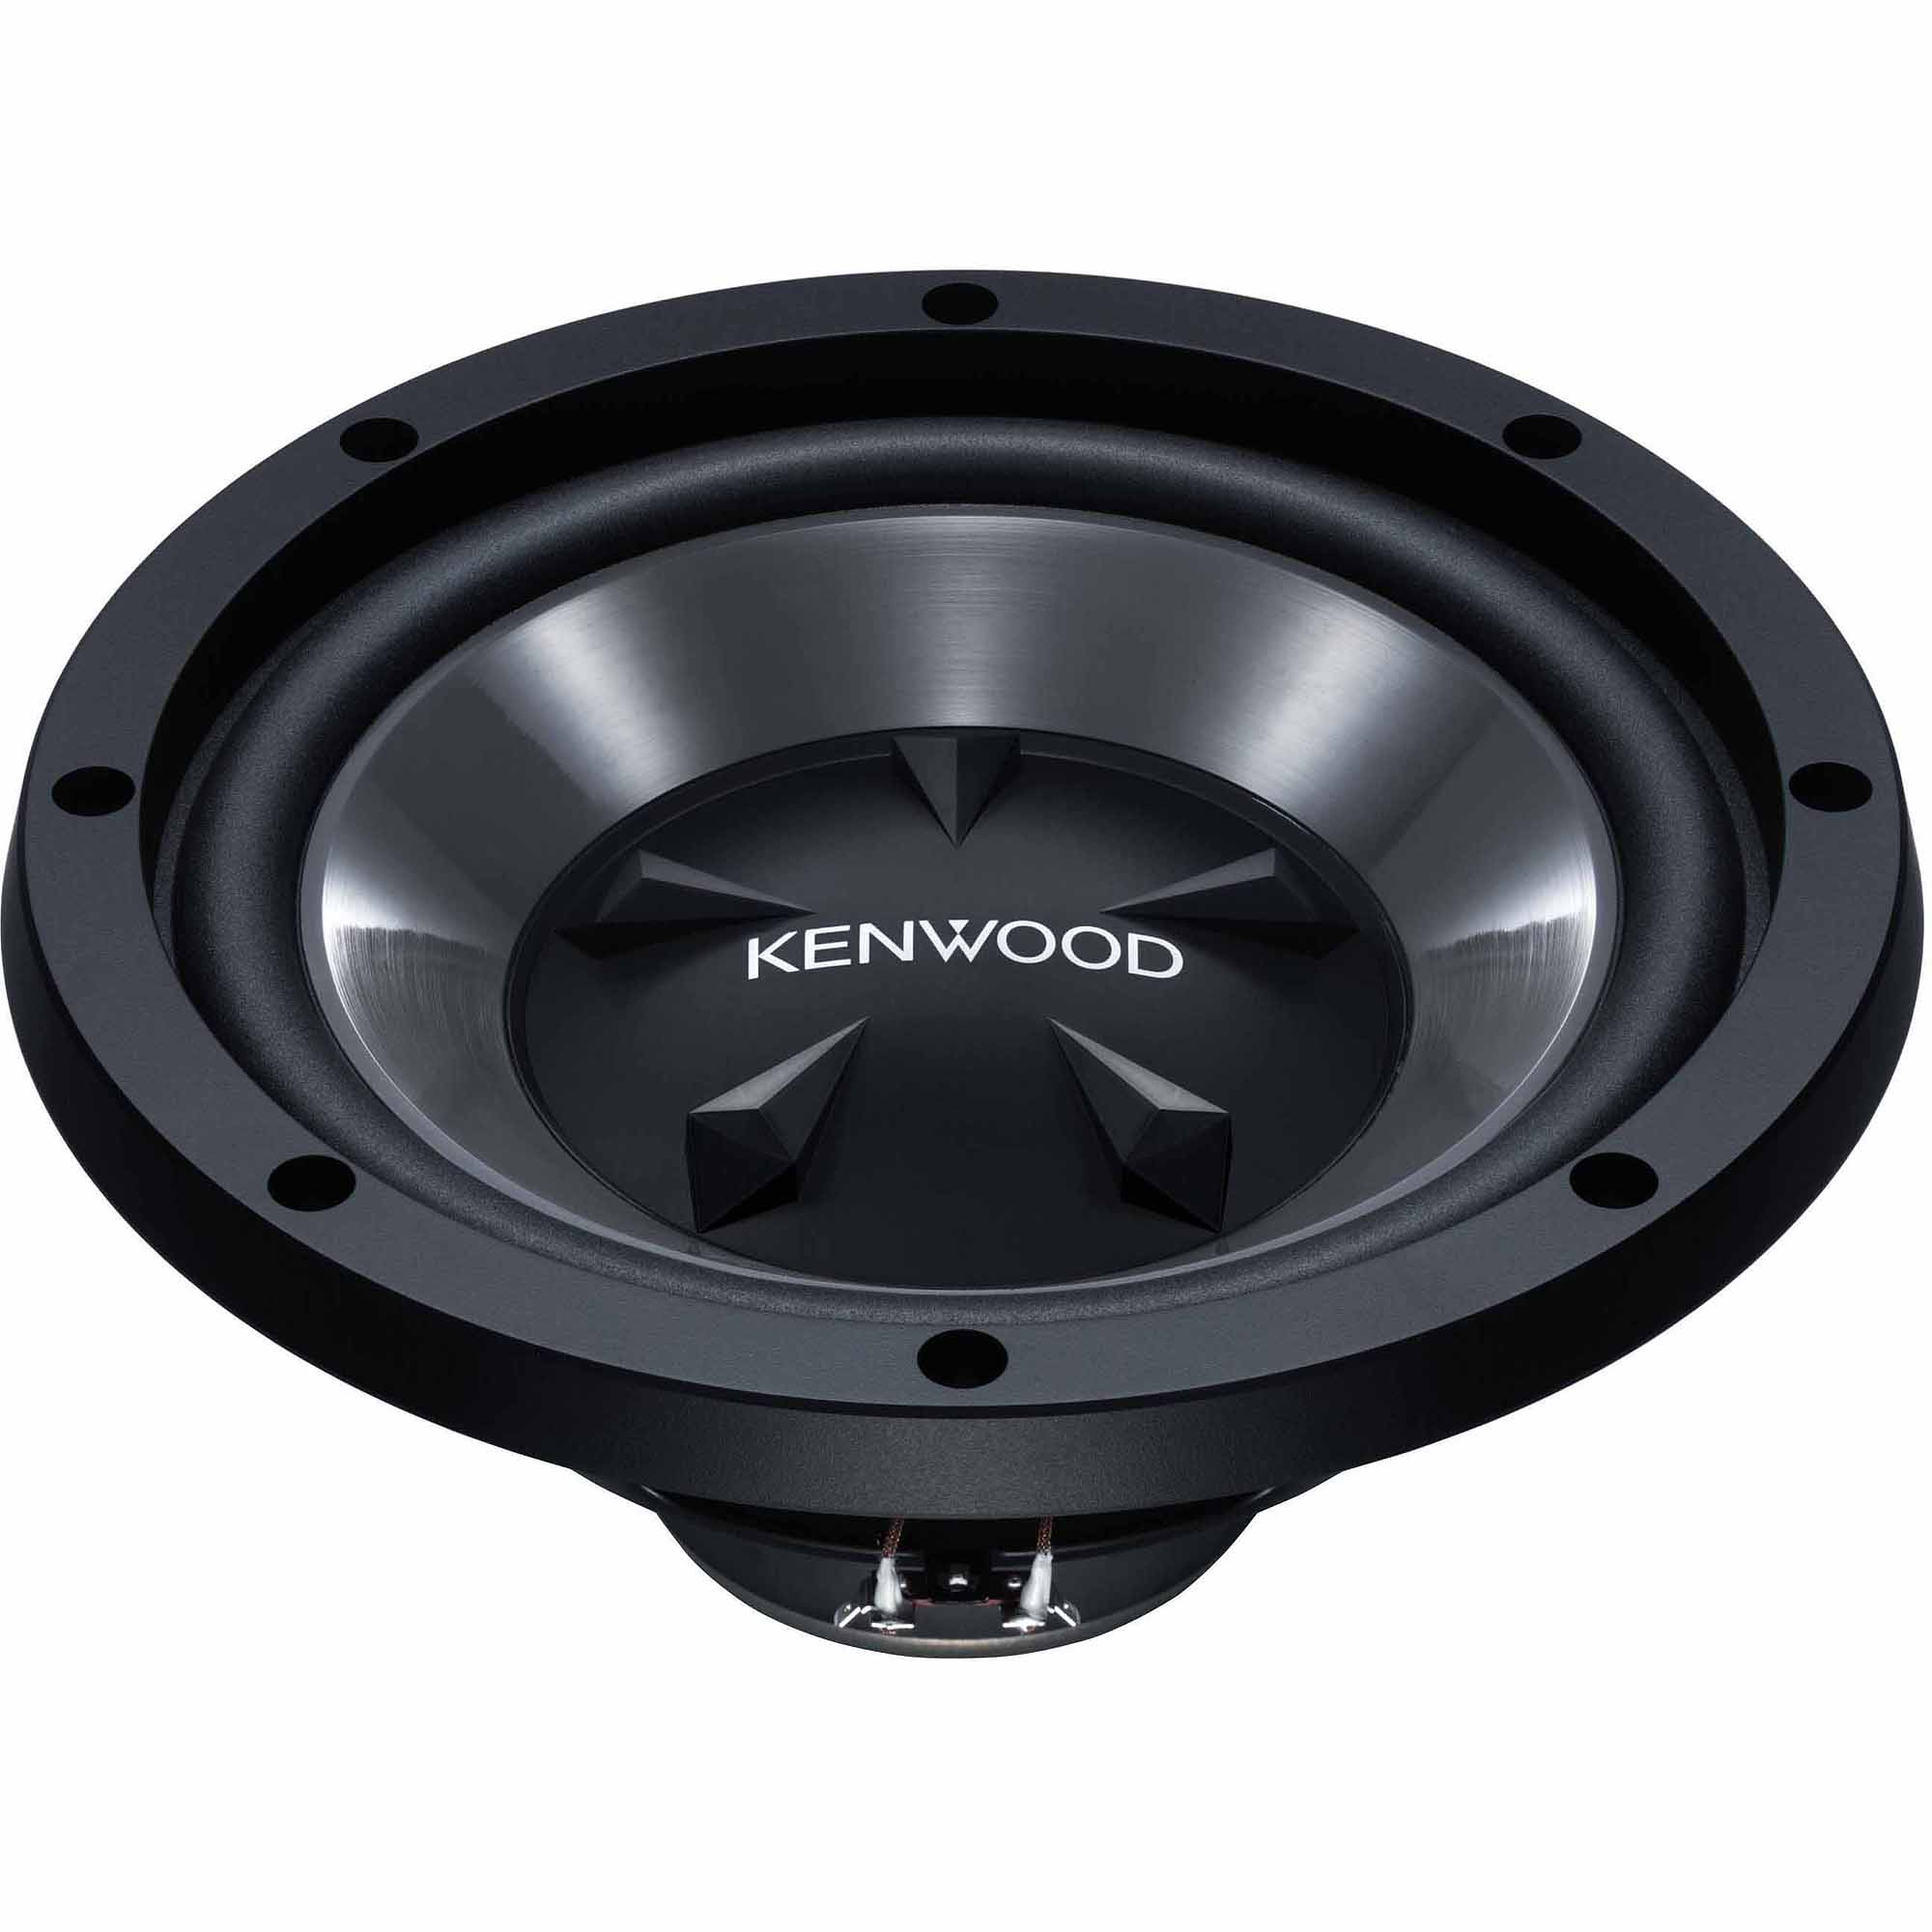 "Kenwood 12"" 800W Max Power Subwoofer"